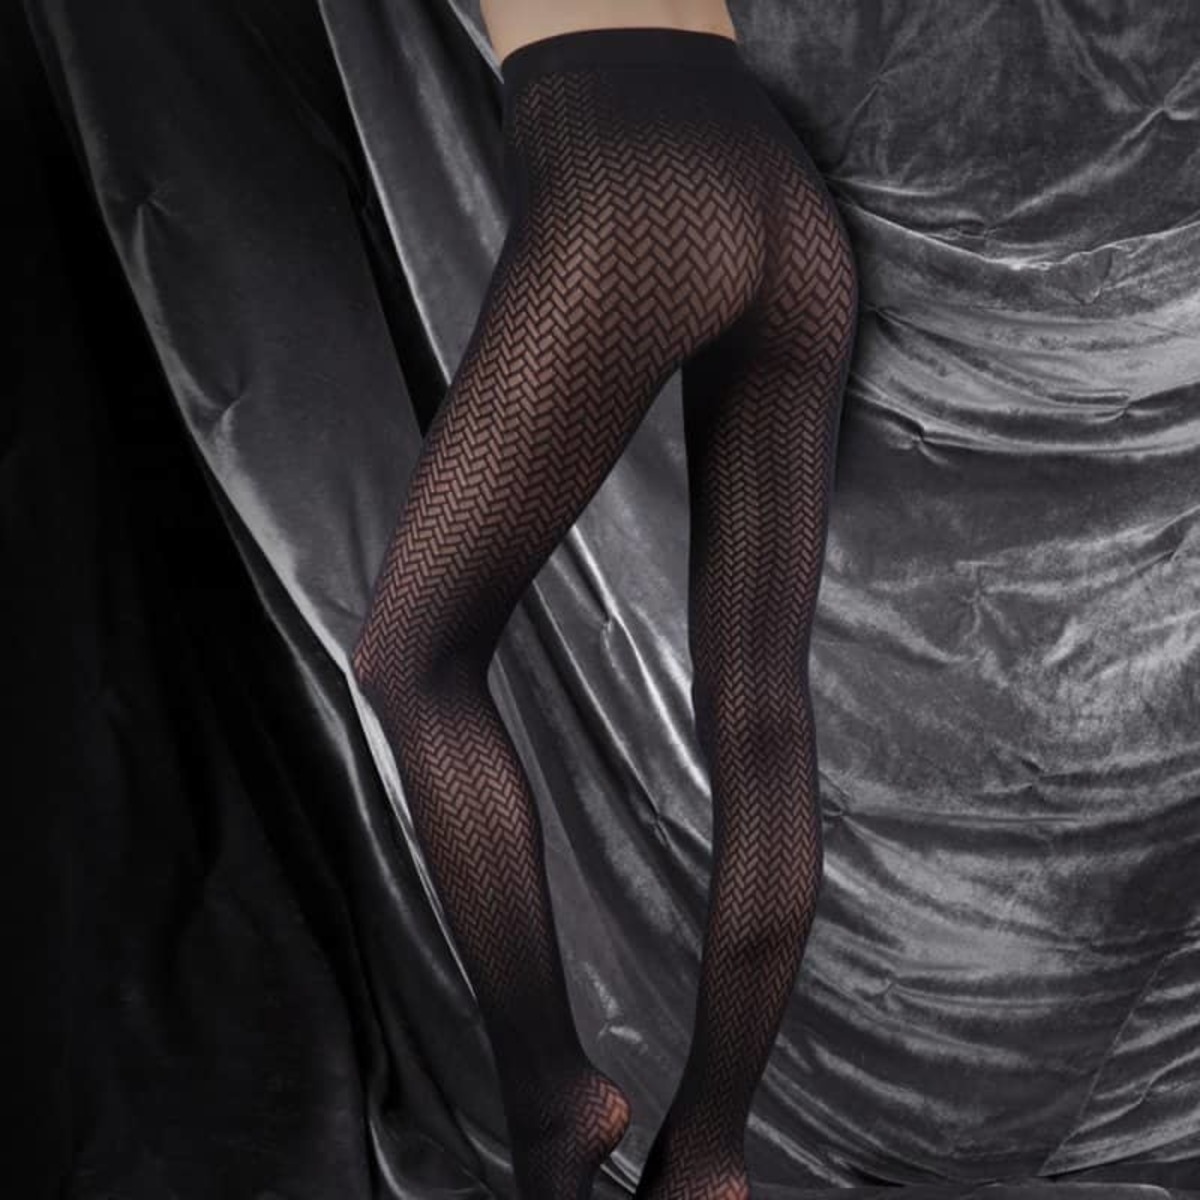 punčocháče LEGWEAR - couture ultimates - the catherine - black - OHULTG S